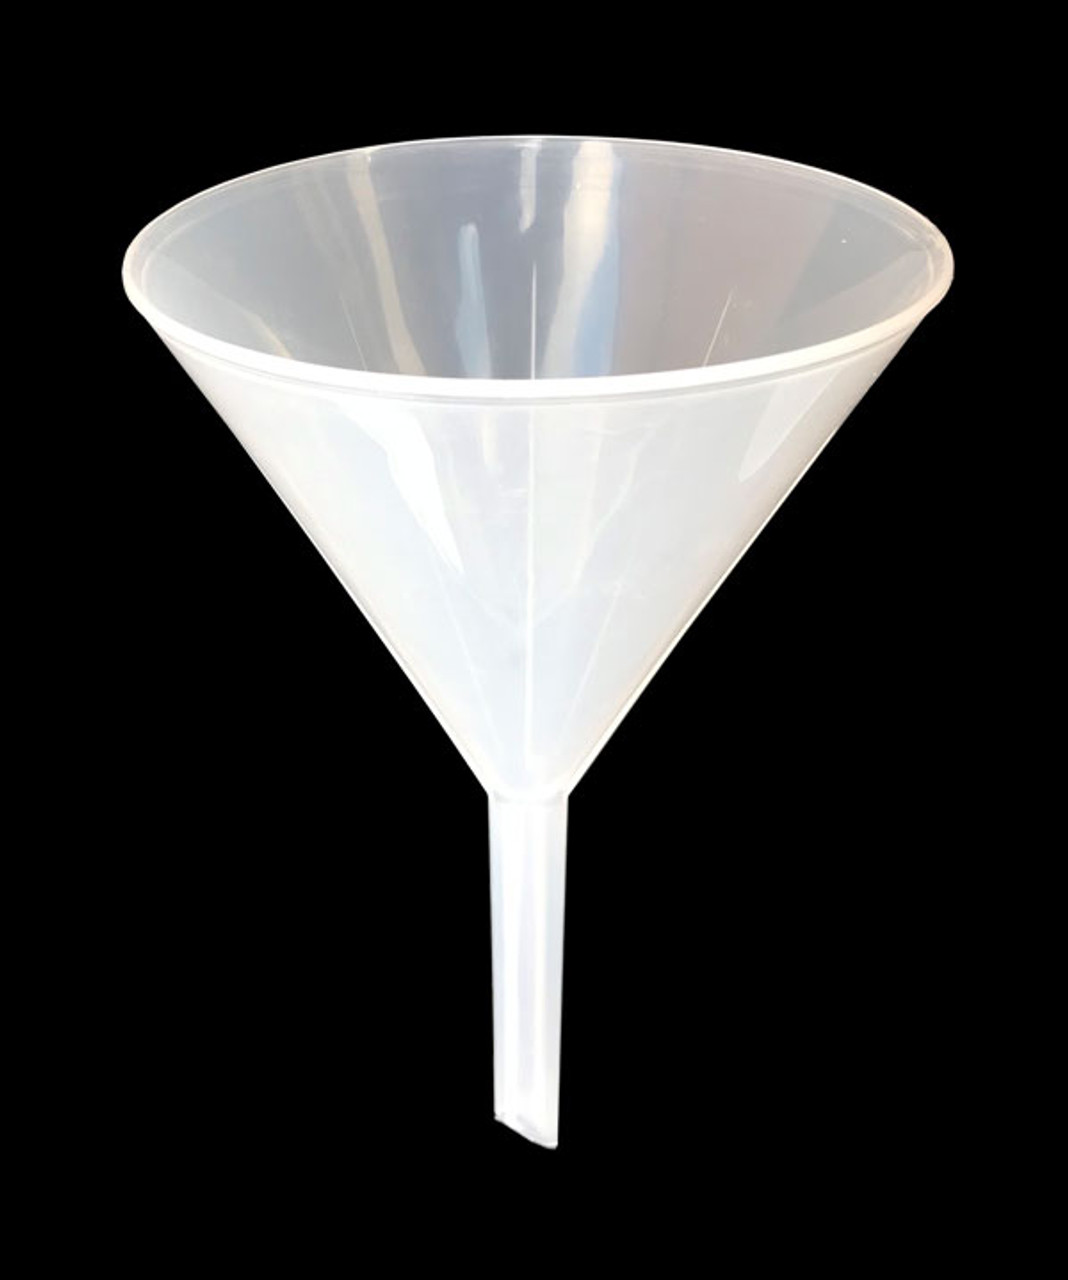 Long Stem Funnel, (Large)150 mm, Polypropylene